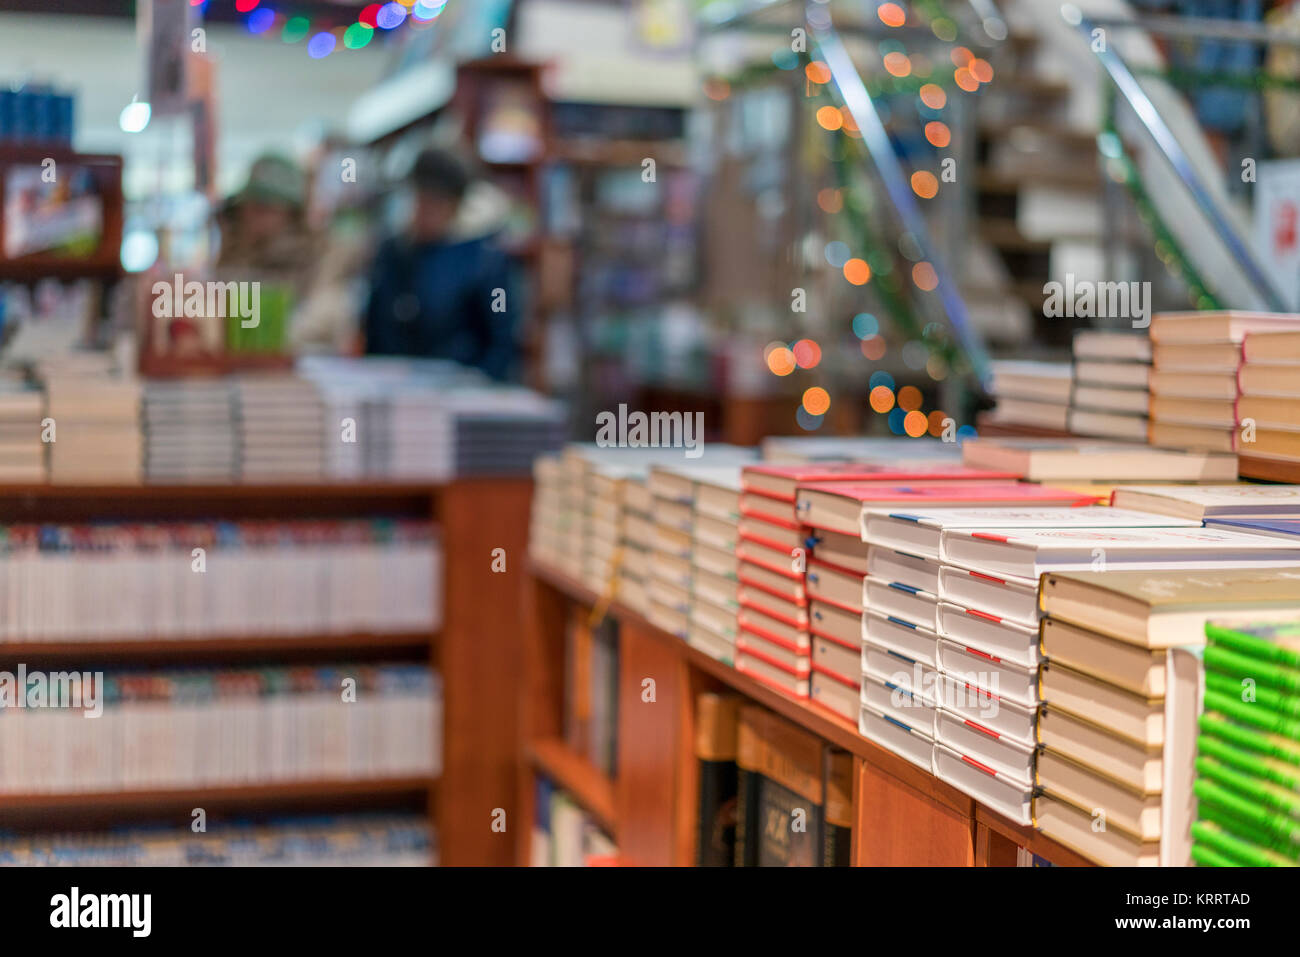 image of Abstract Blur people at book store in shopping mall for background usage - Stock Image